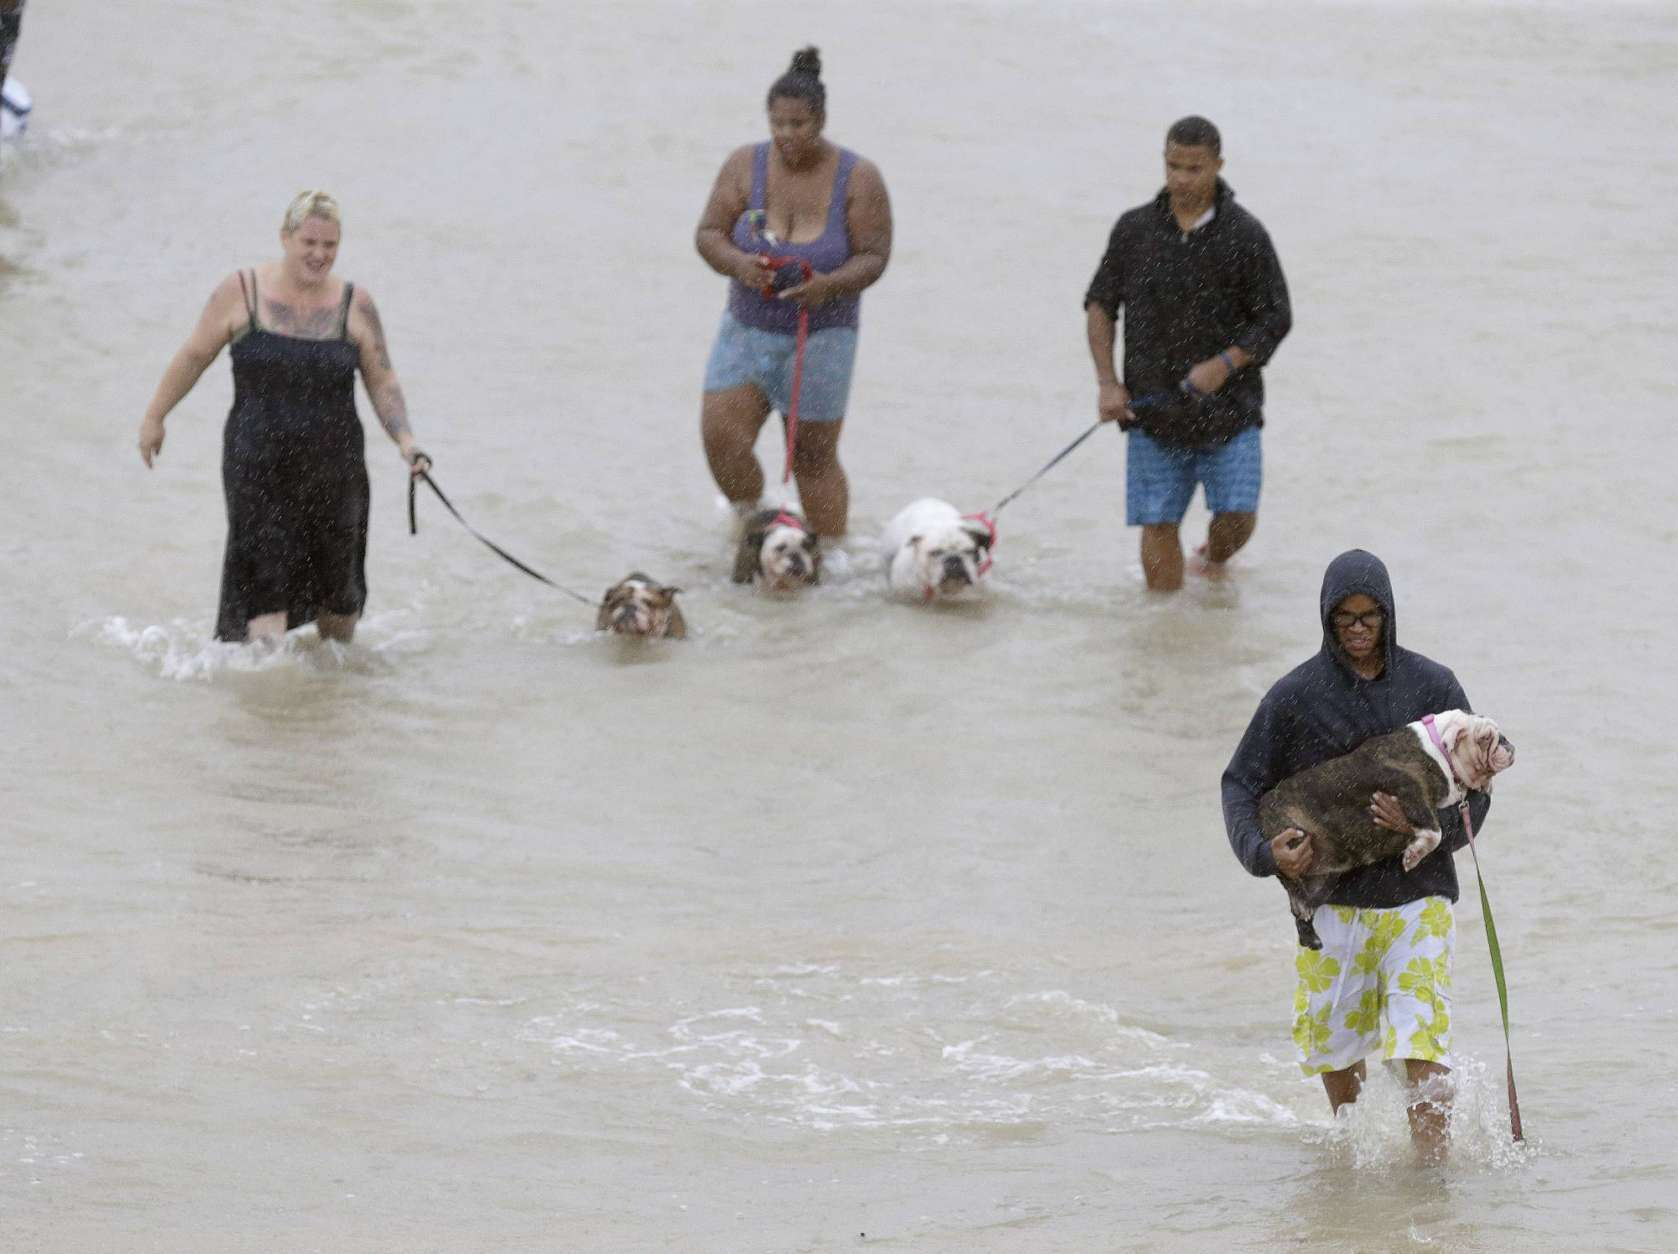 People walk with dogs along a street at the east Sam Houston Tollway from rescue boats as evacuations continue from flooding in Houston, Texas, Monday, Aug. 28, 2017, following Tropical Storm Harvey. Floodwaters reached the rooflines of single-story homes Monday and people could be heard pleading for help from inside as Harvey poured rain on the Houston area for a fourth consecutive day after a chaotic weekend of rising water and rescues. (Melissa Phillip/Houston Chronicle via AP)